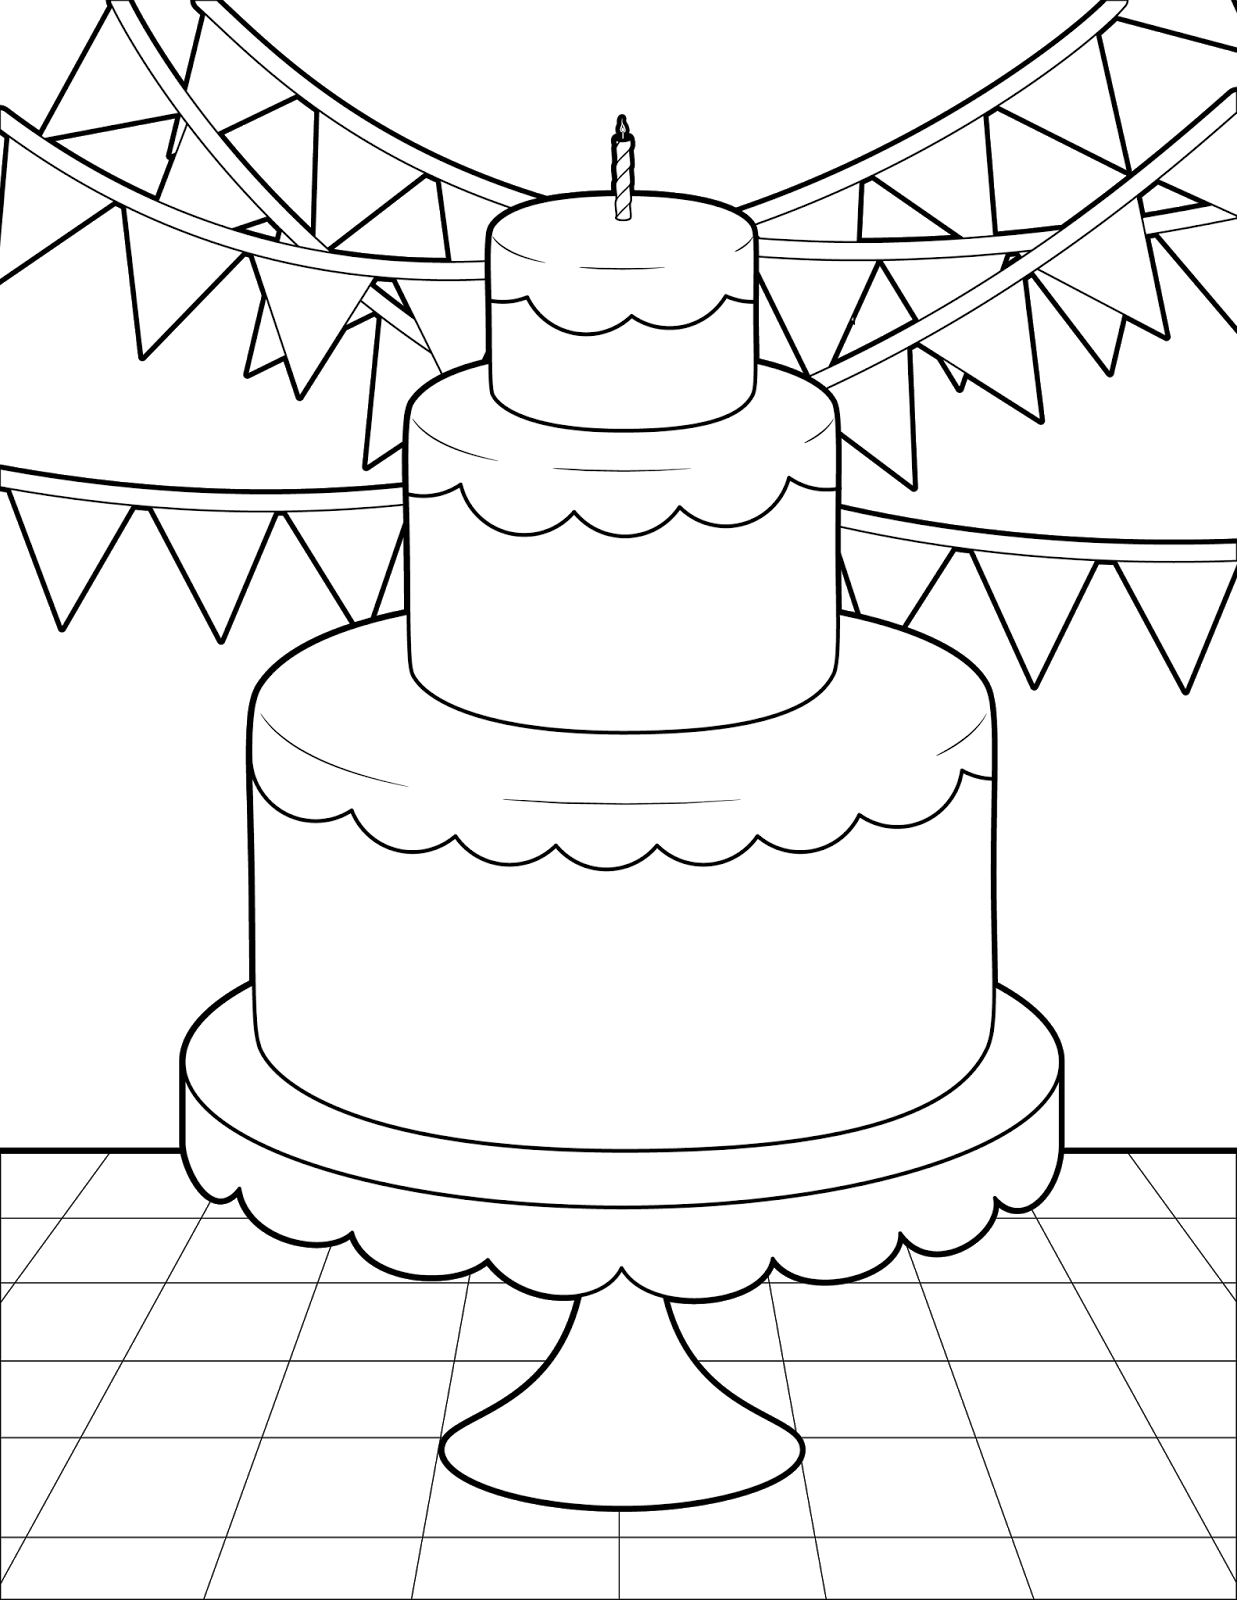 coloring pages cake the spinsterhood diaries thursday coloring page birthday pages cake coloring